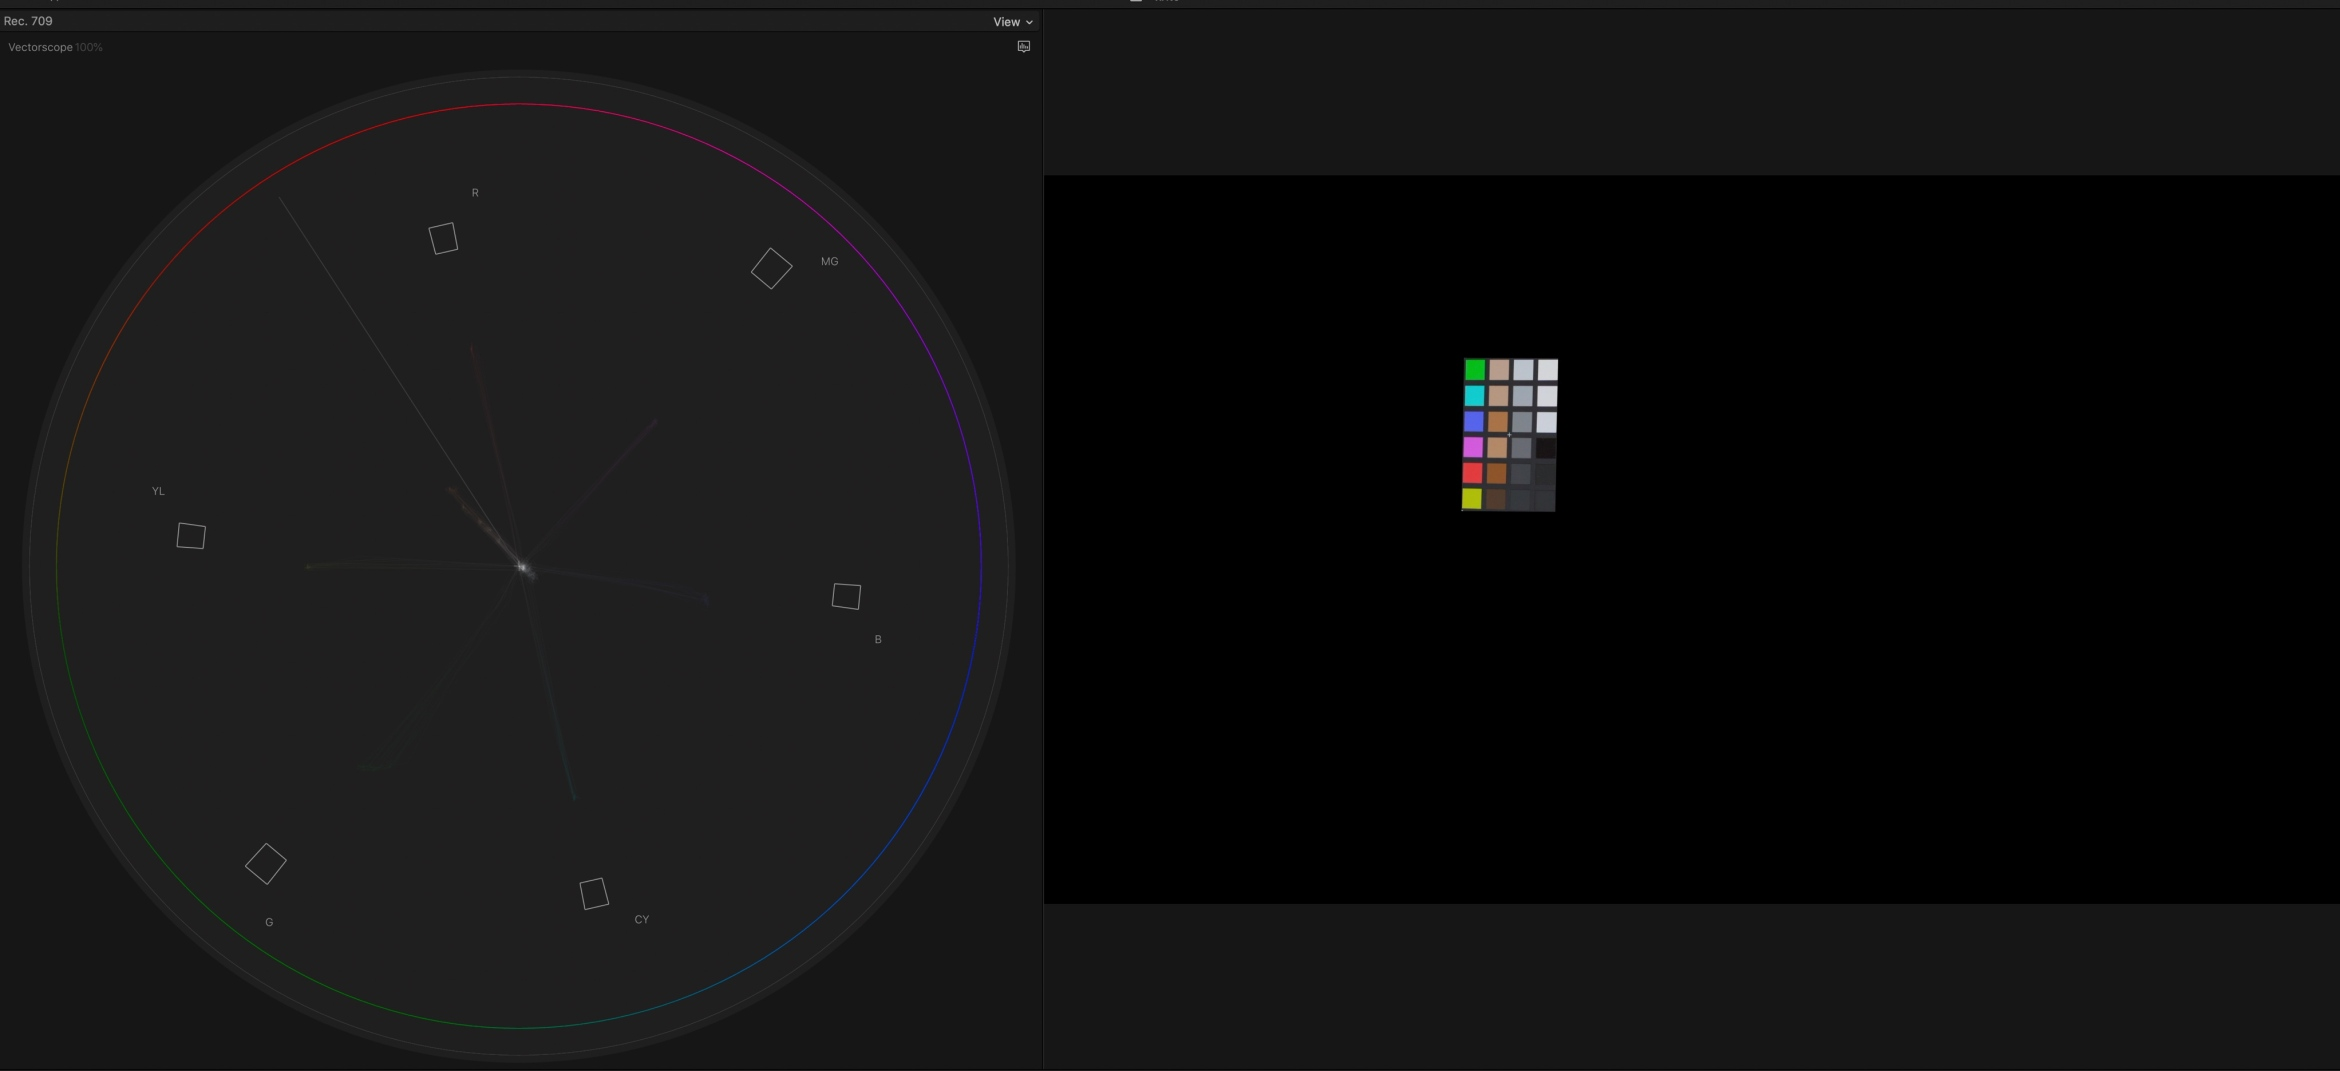 10. Boost saturation so we can see where the colors sit on the vectorscope more easily. The colors yellow, red, magenta, blue, cyan and green aren't perfectly lined up on the scope. The skin tones are shifted to the yellows.